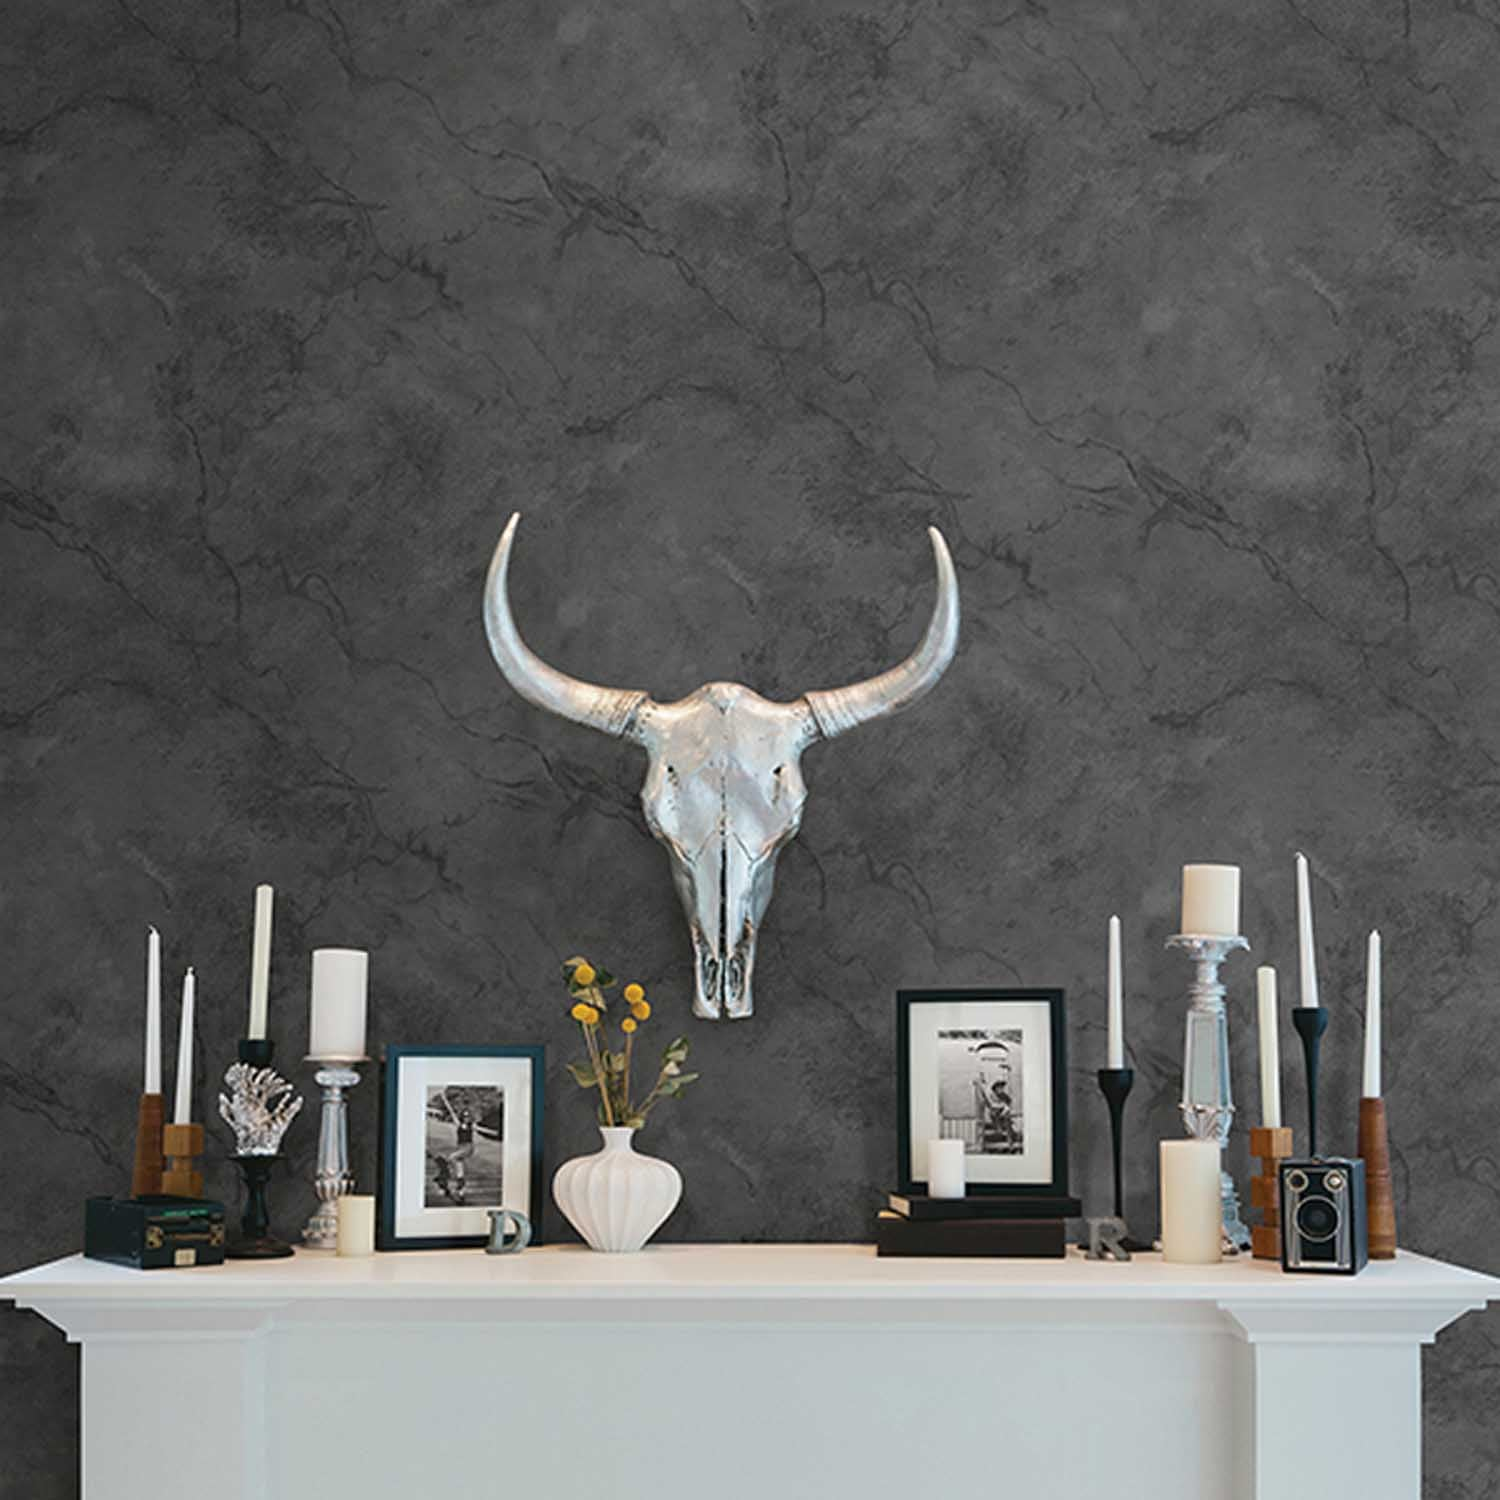 Most Inspiring Wallpaper Marble Black - marble_effect_wallpaper_in_charcoal_and_black_roomset  Gallery_52448.jpg?v\u003d1516372916